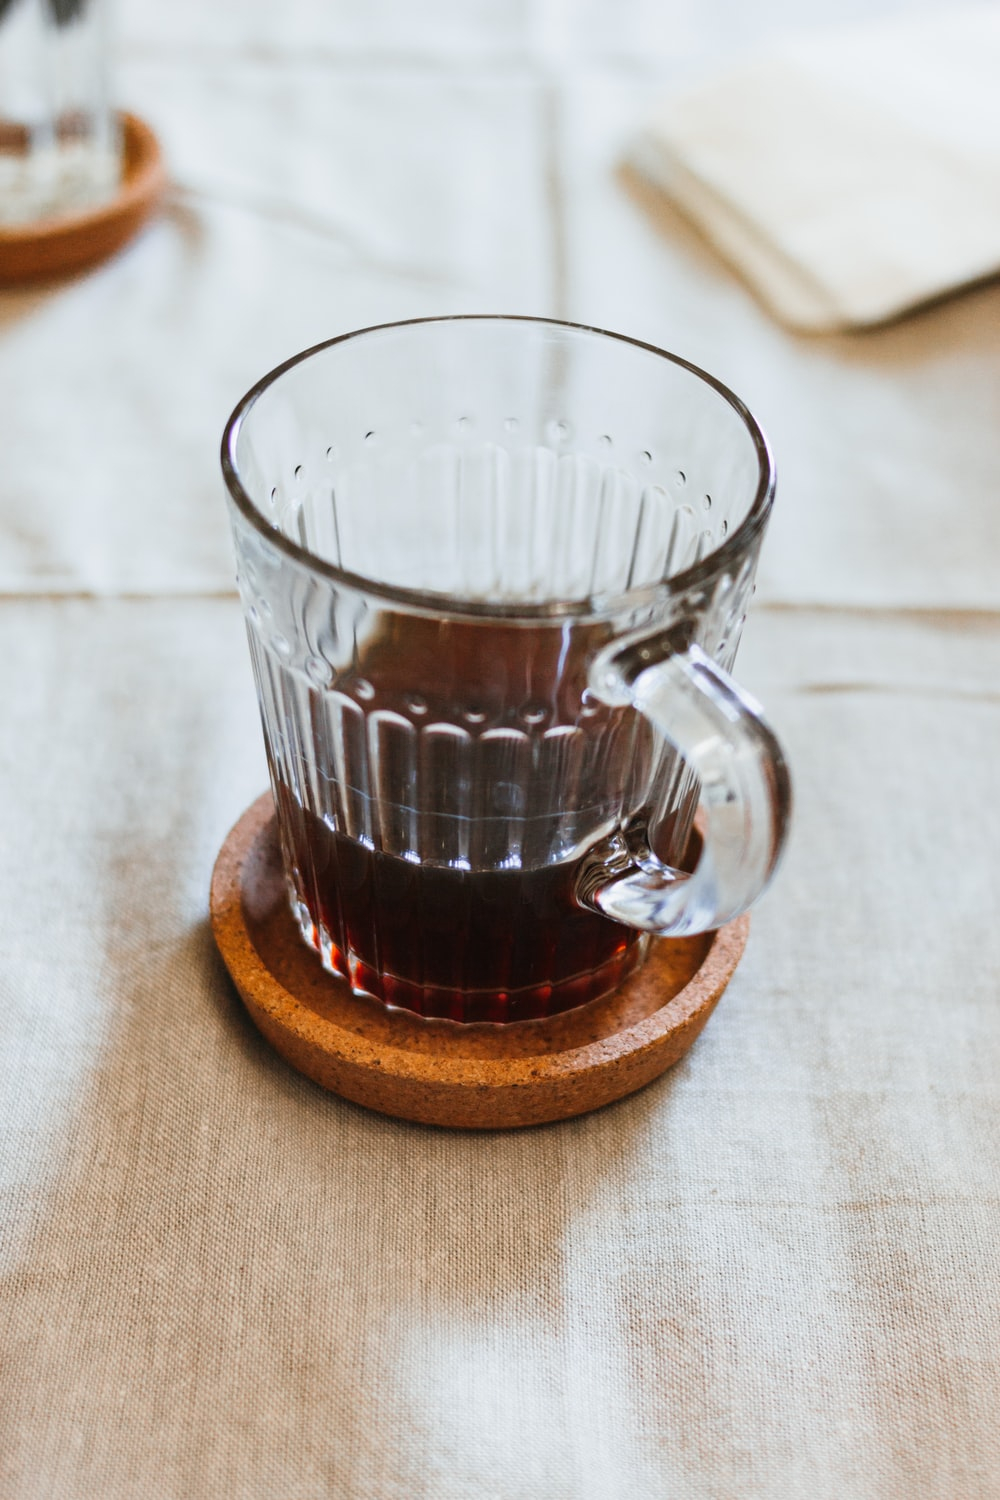 clear glass mug on brown coaster